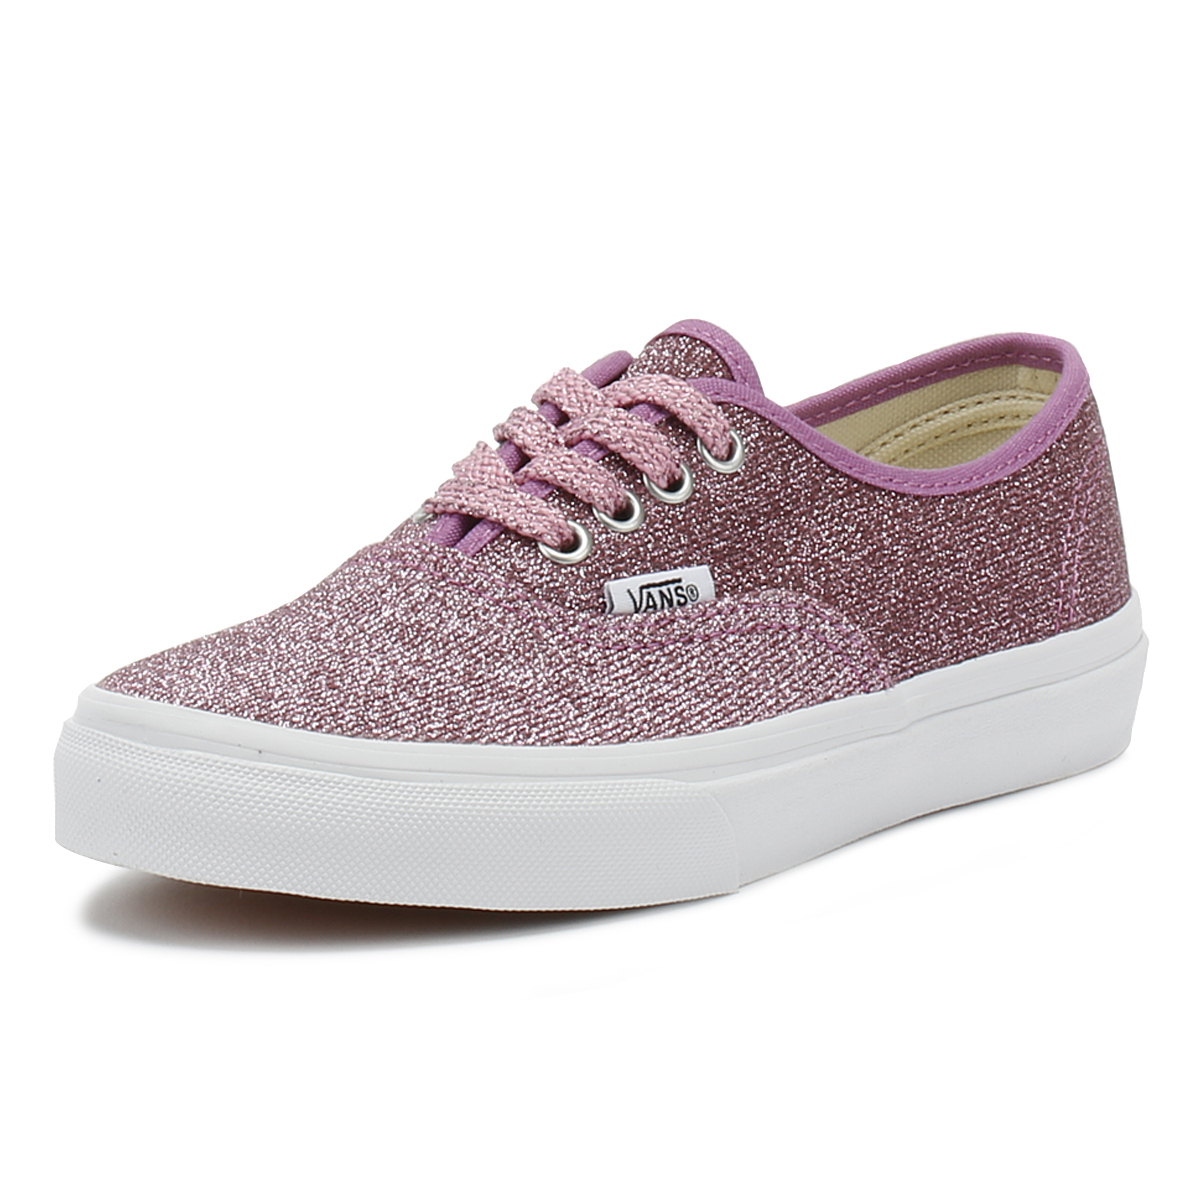 a51b1bb5785a Details about Vans Kids Lurex Glitter Pink   True White Authentic Trainers  Girls Skate Shoes